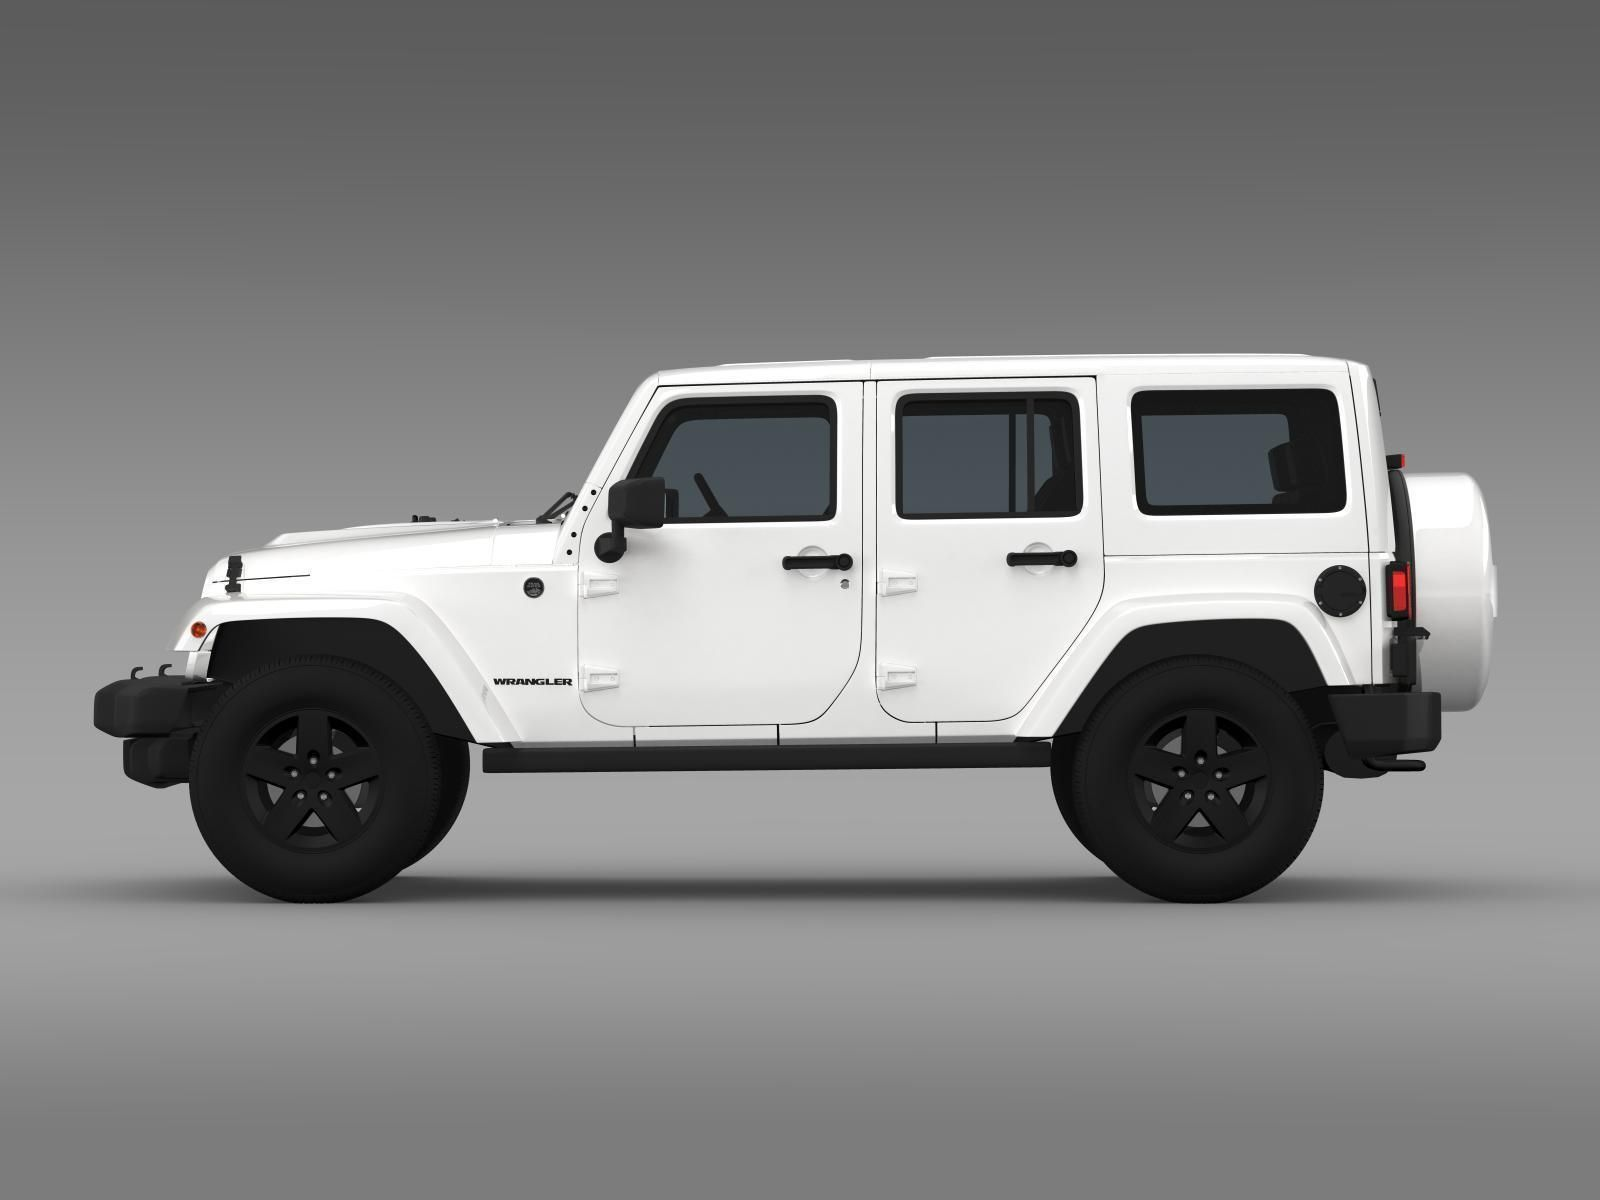 jeep wrangler unlimited x 2015 3d model max obj 3ds fbx c4d lwo lw lws. Black Bedroom Furniture Sets. Home Design Ideas